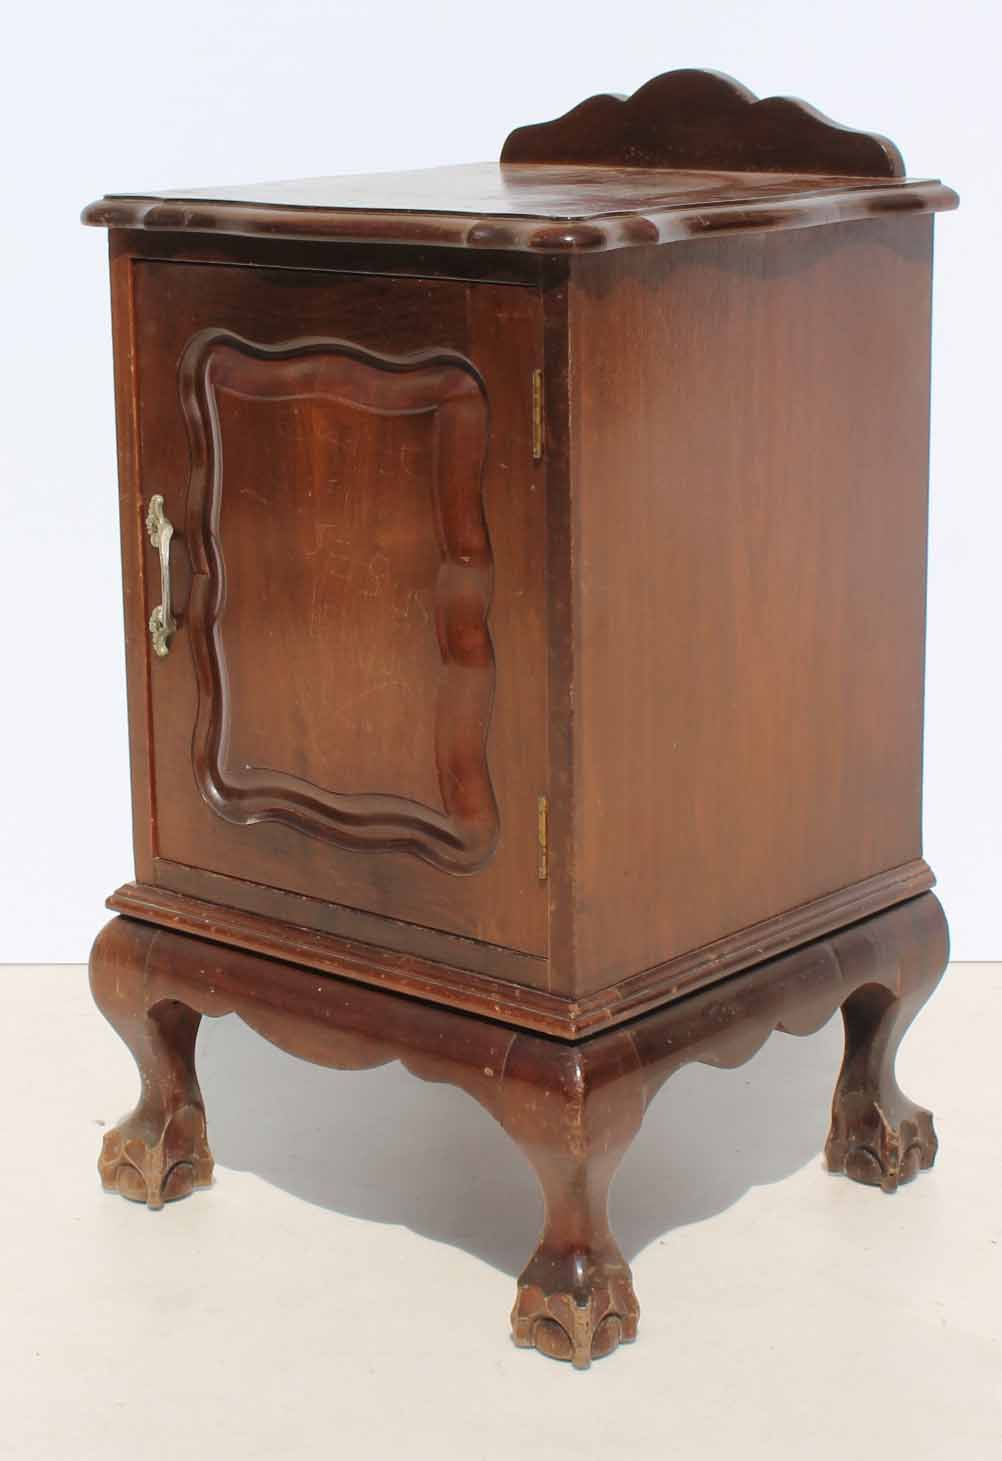 Condition Used Vintage Imbuia Ball And Claw Bedside Cabinet